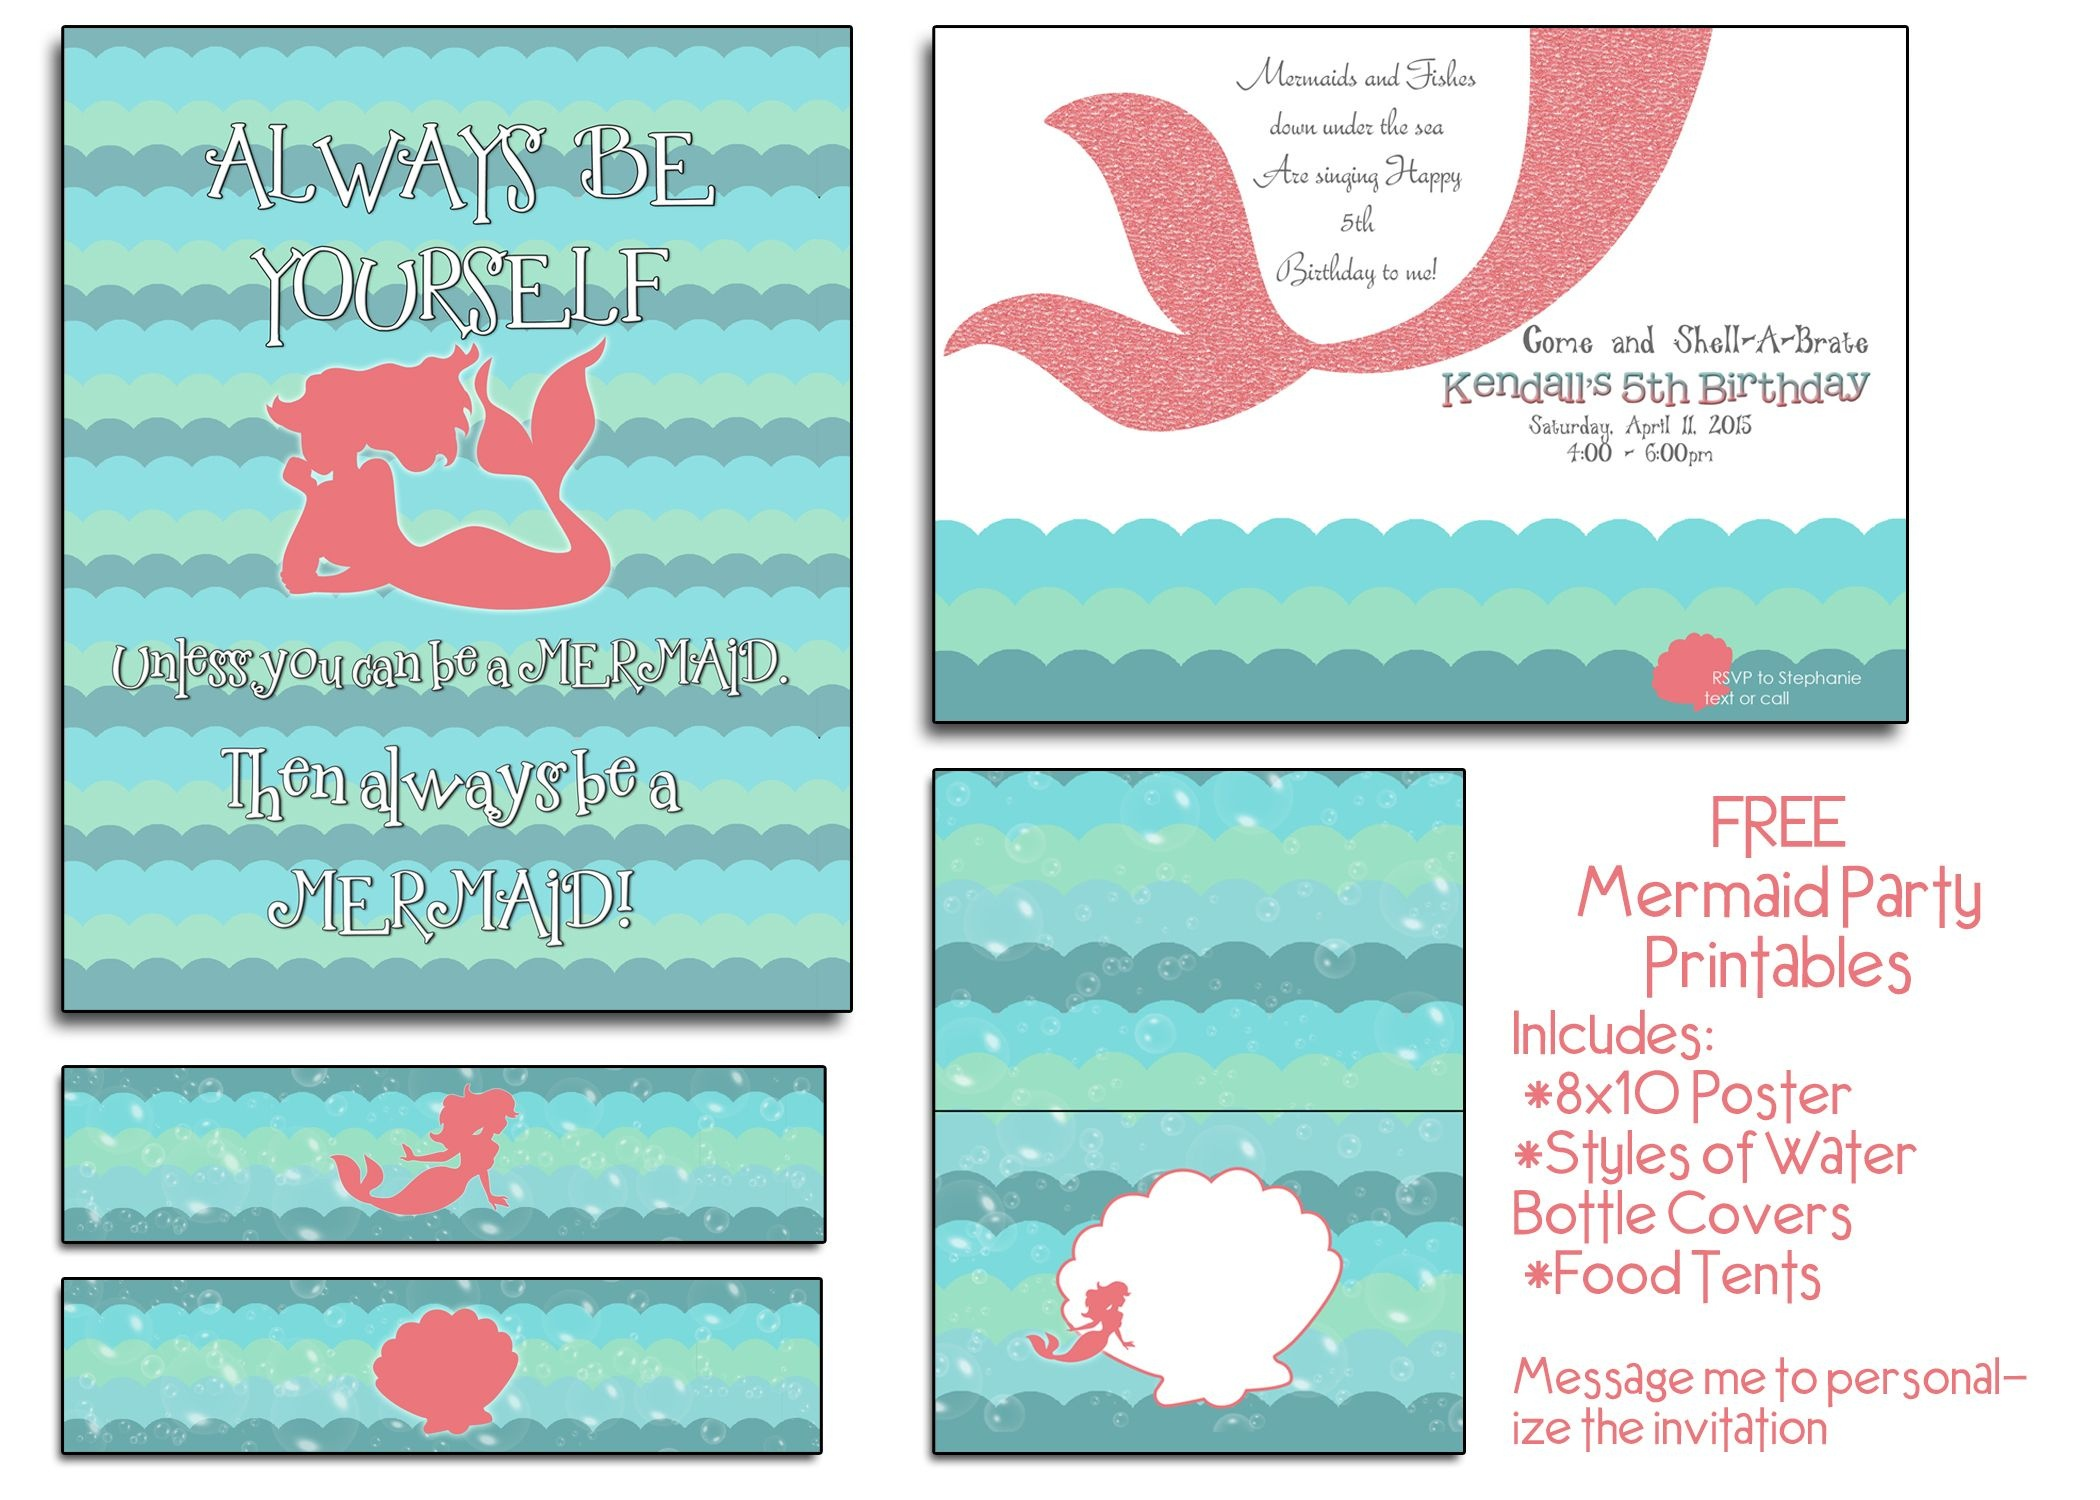 Free Mermaid Party Printables! I Will Even Customize The Invite At - Mermaid Birthday Invitations Free Printable